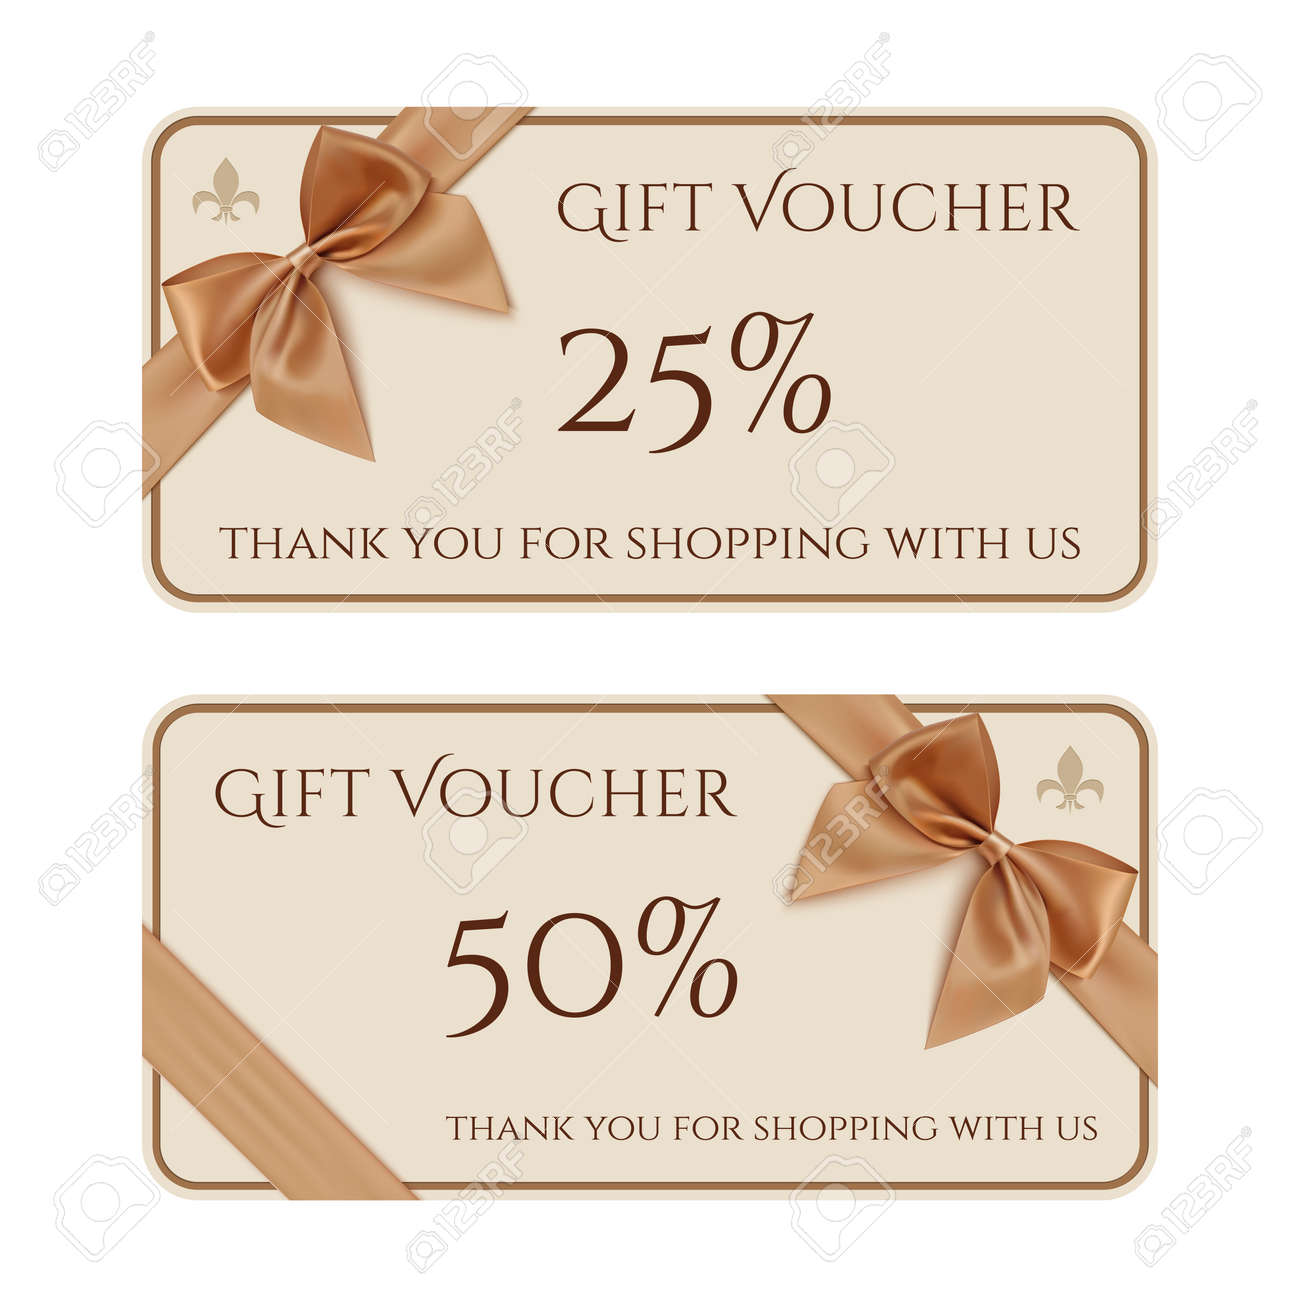 Gift Voucher Template With Golden Ribbon And A Bow. Vector Illustration  Stock Vector   36954991  Present Voucher Template